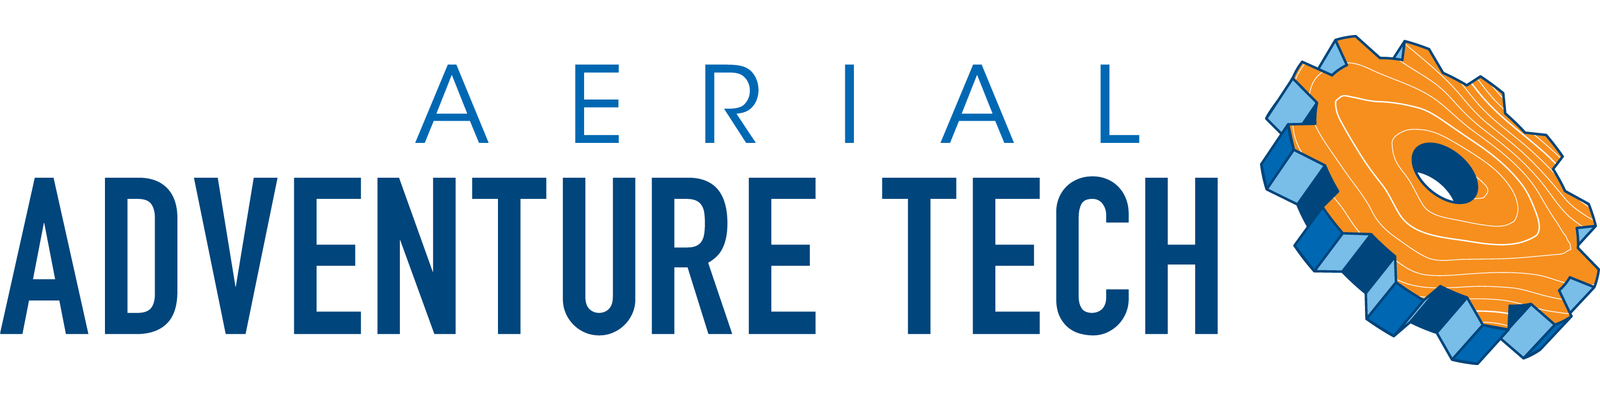 Aerial Adventure Technologies - Tier III Sponsor